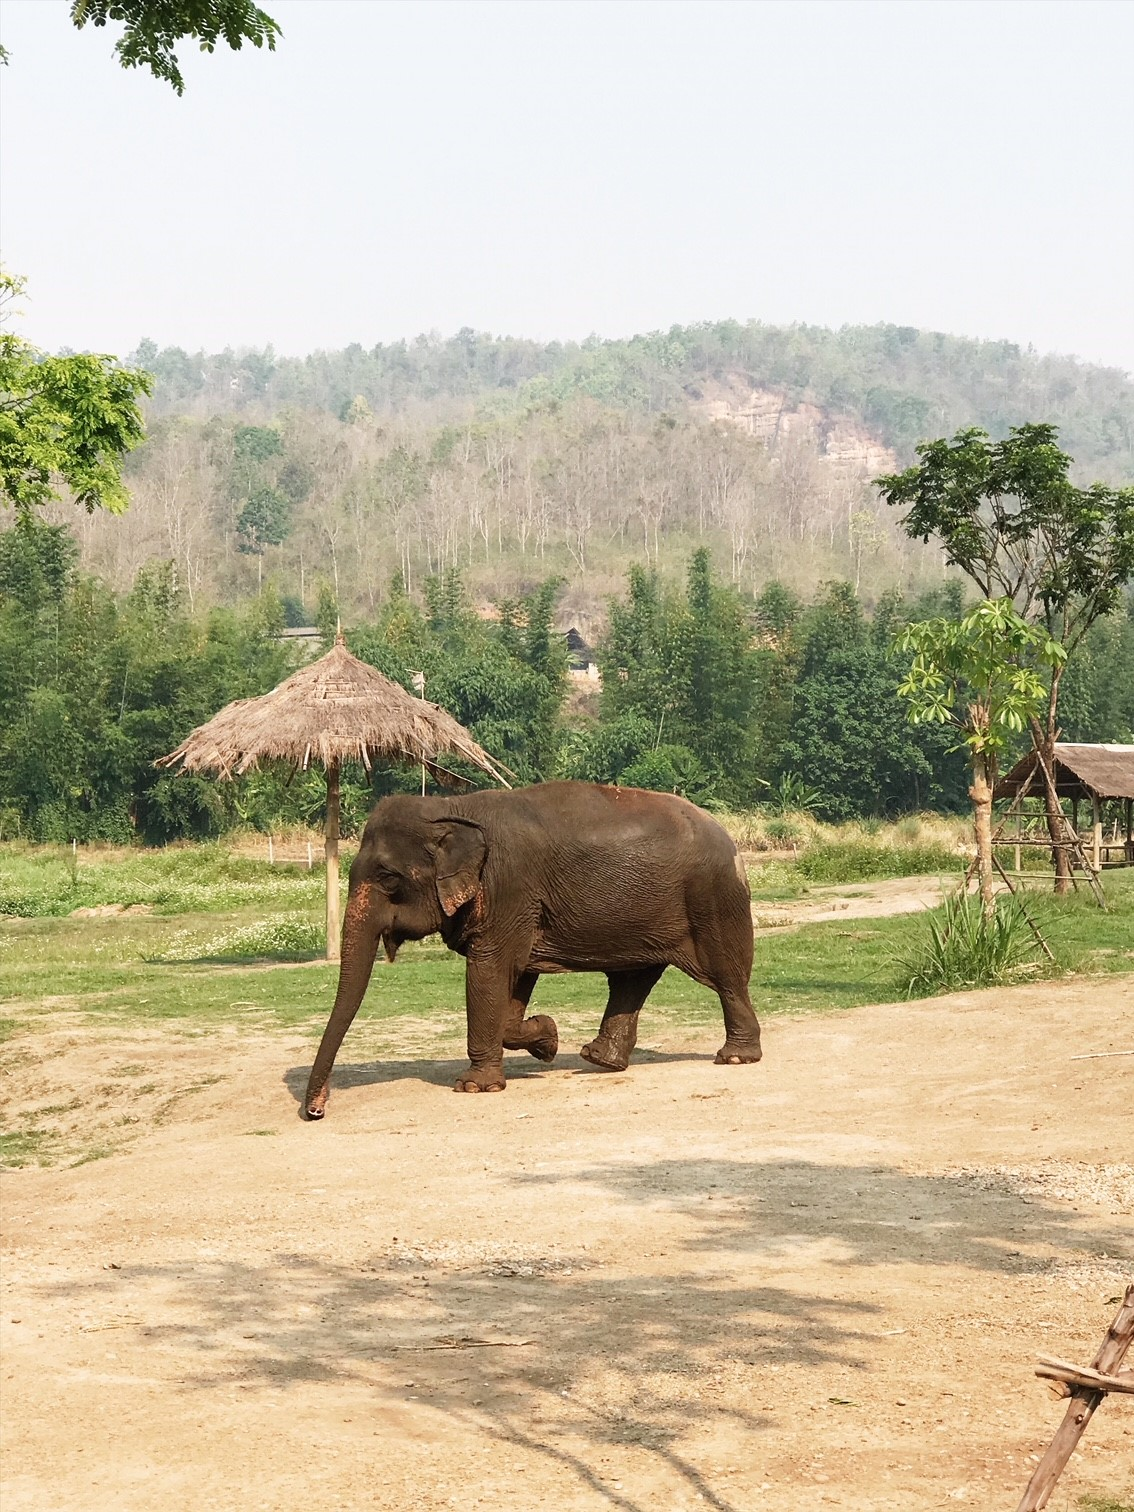 Magical Experience with the Elephants at Lanna Kingdom Elephant Sanctuary in Chiang Mai, Thailand.